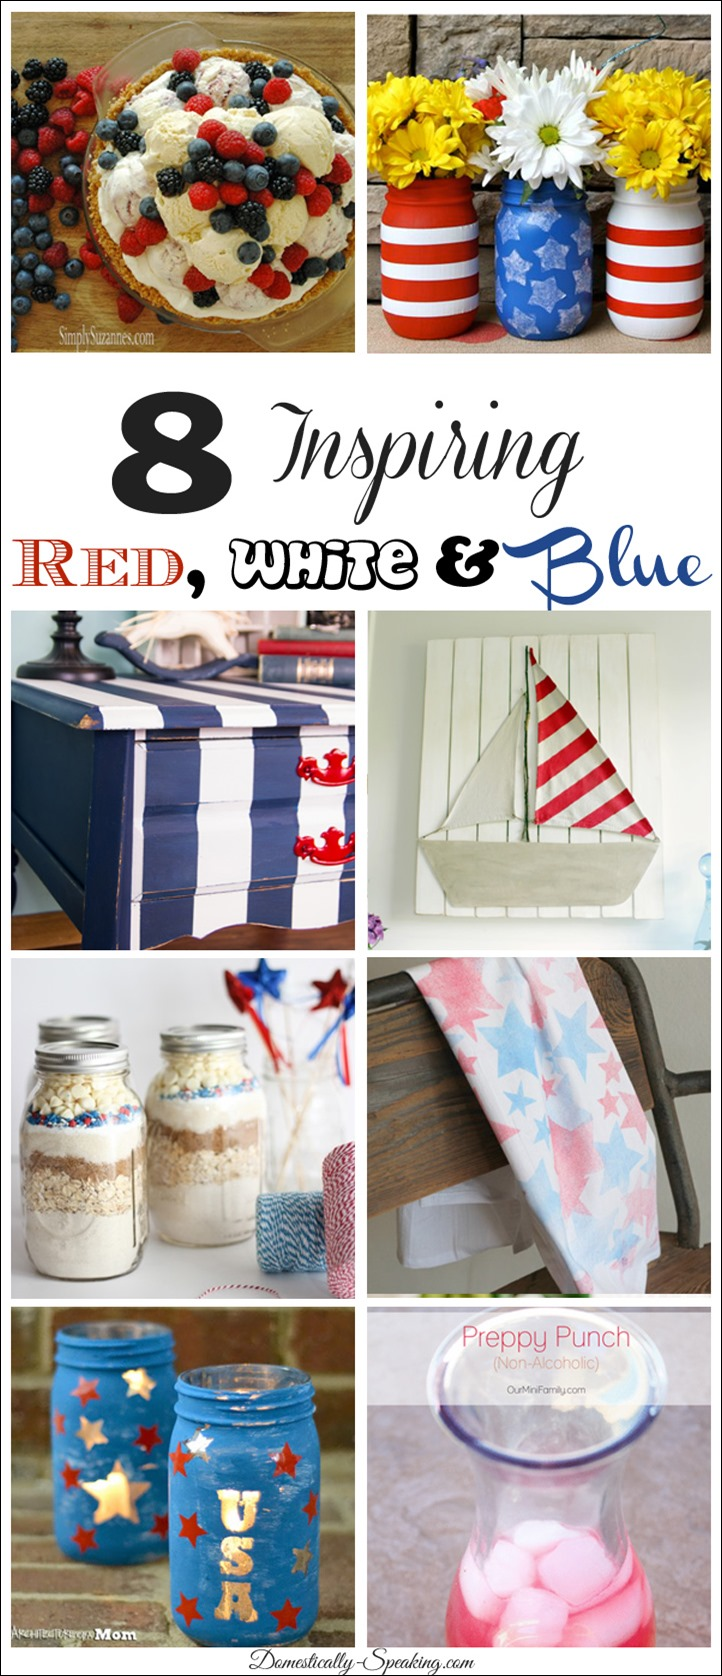 8-Inspiring-Red-White-and-Blue-Recipes-Crafts-and-Decor_thumb